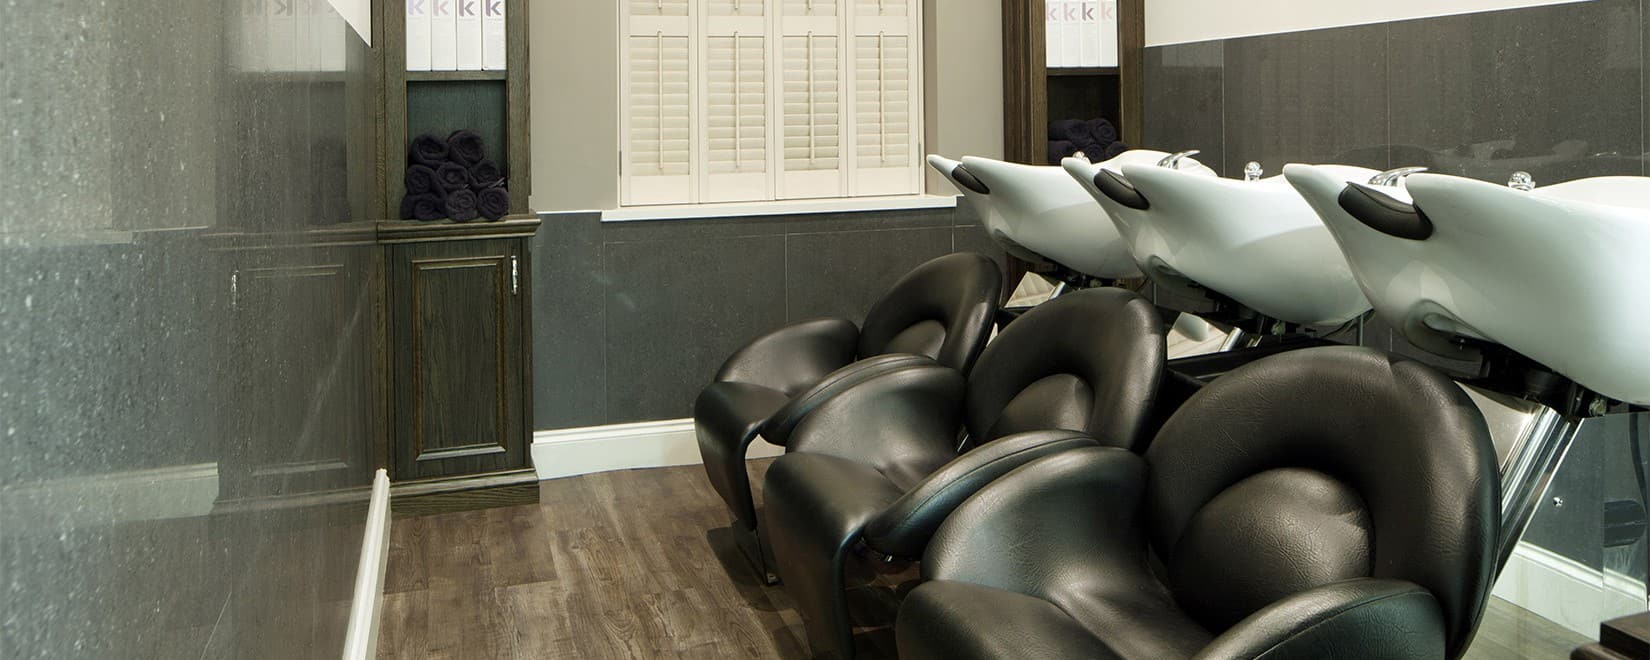 M Salons - Hairdressers Bishops Stortford - Interior Washing